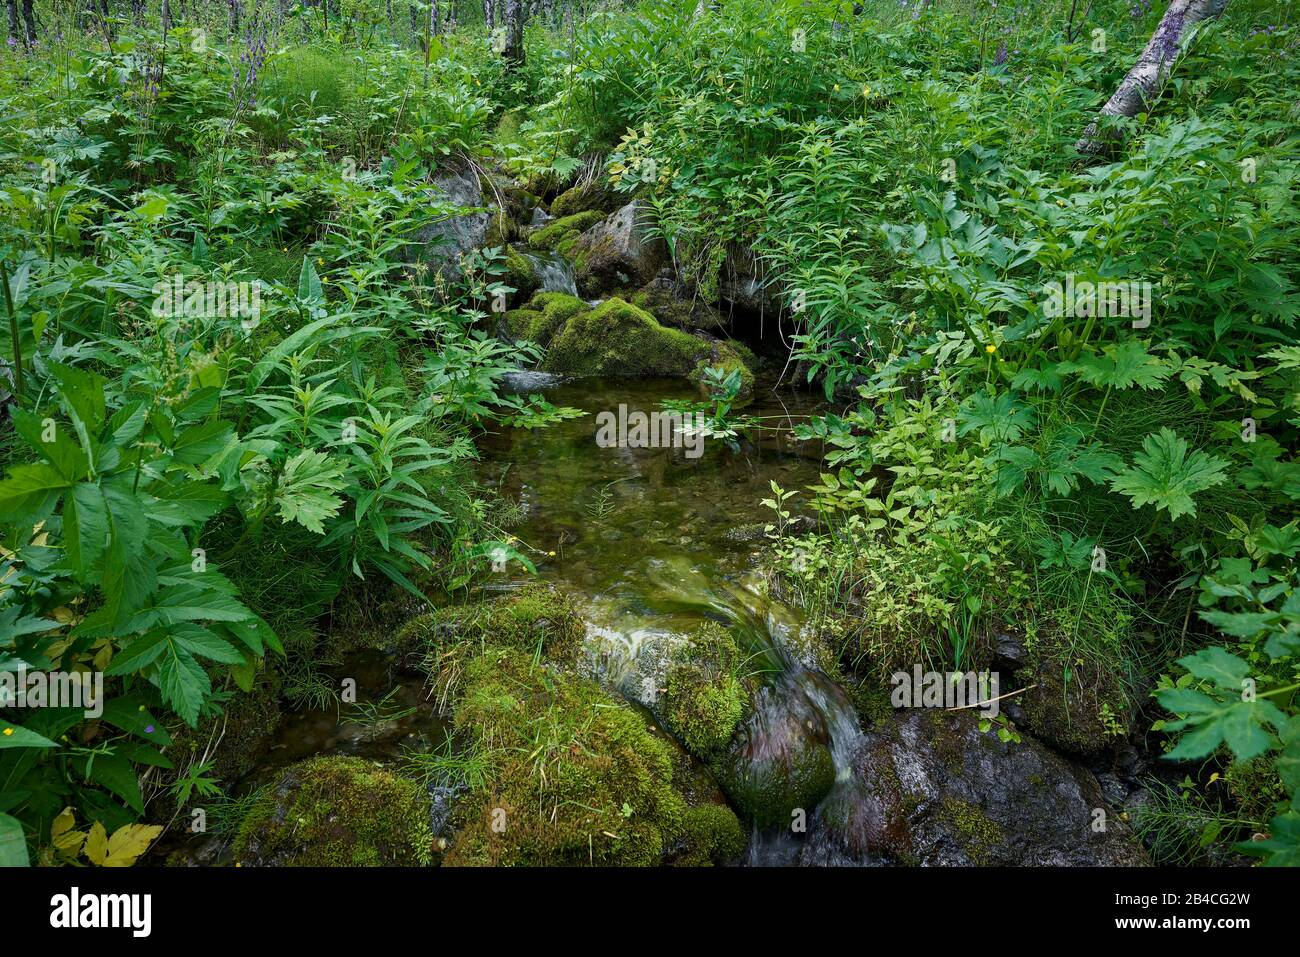 Sweden,Lapland,Sarek national park, Rapaätno valley, Small creek with herbs and flowers Stock Photo